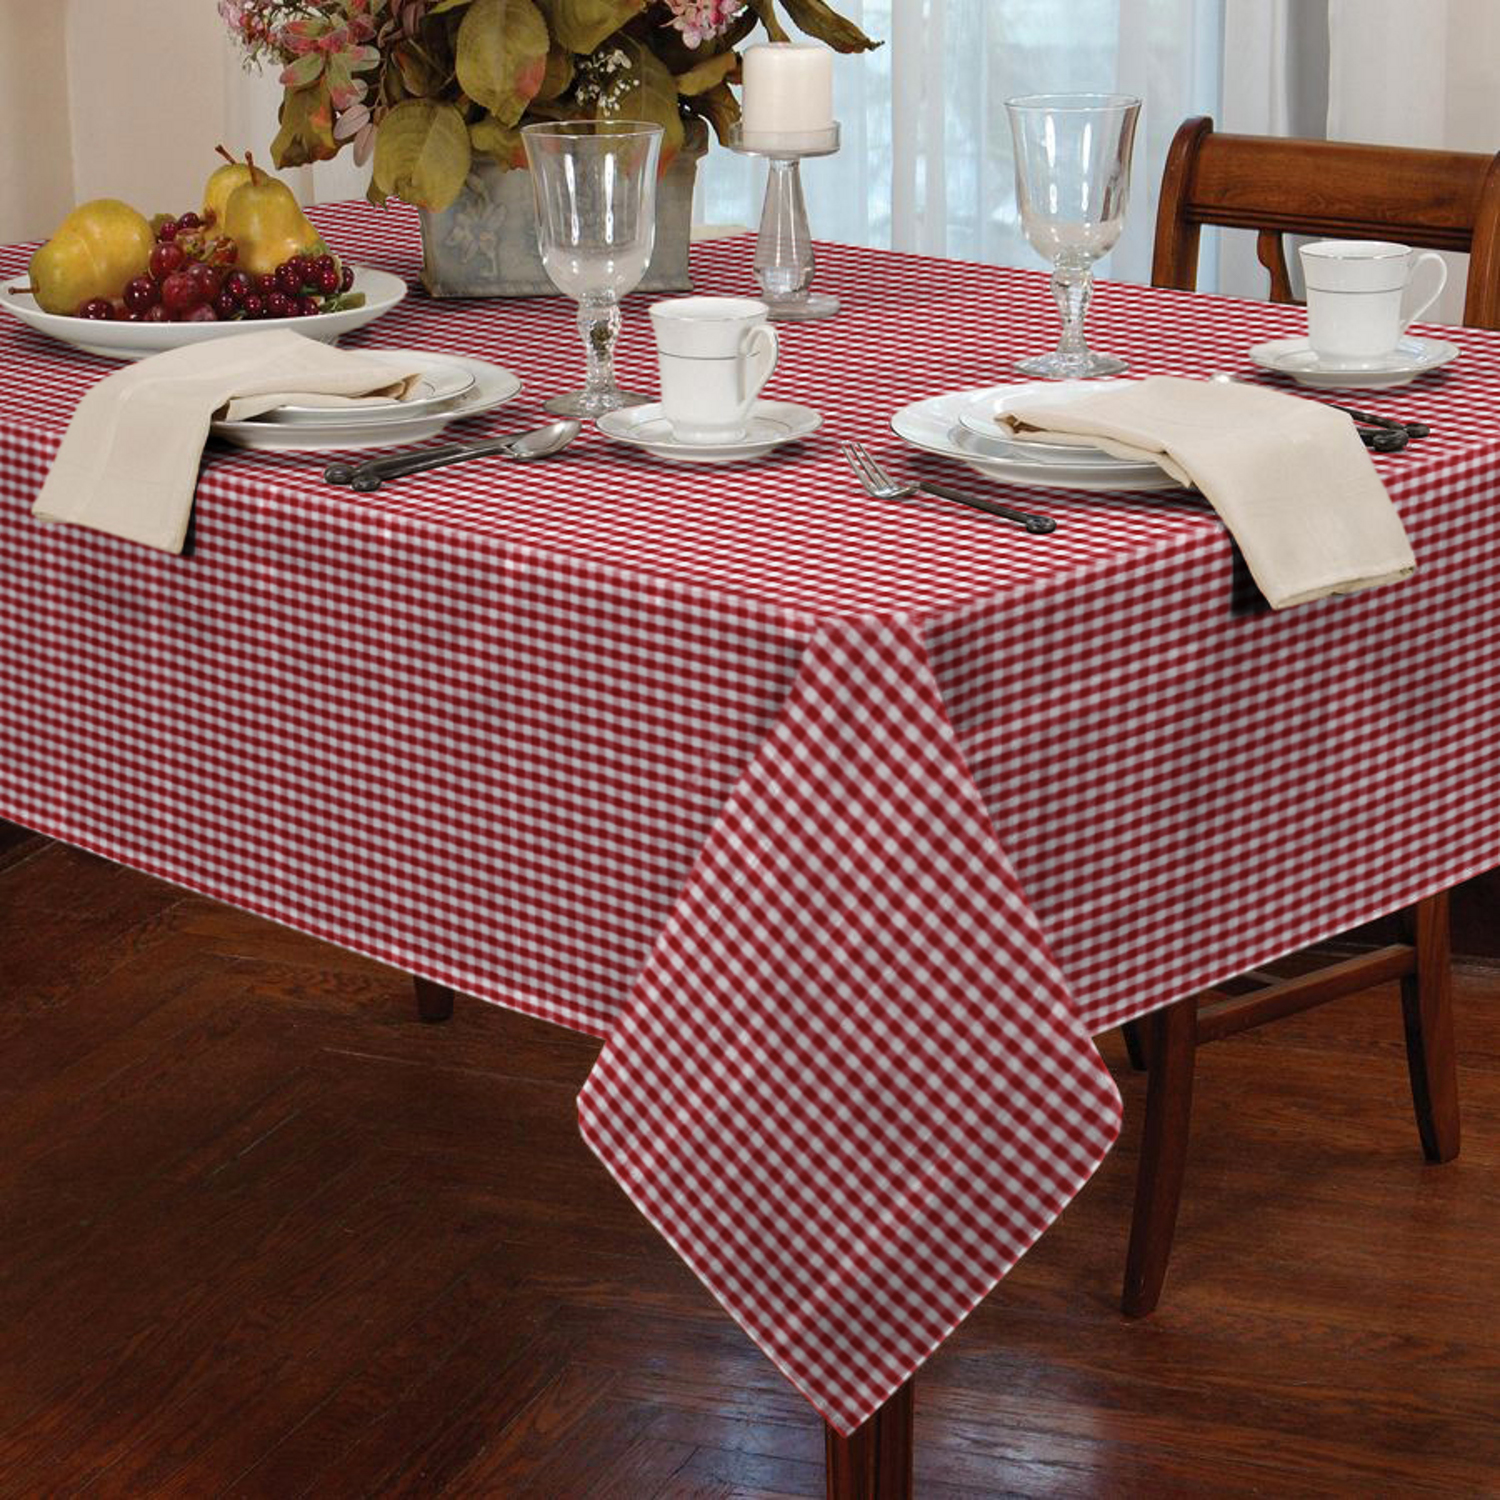 Details About Garden Picnic Gingham Check Tablecloth Dining Room Table Linen Kitchen Cover Mat